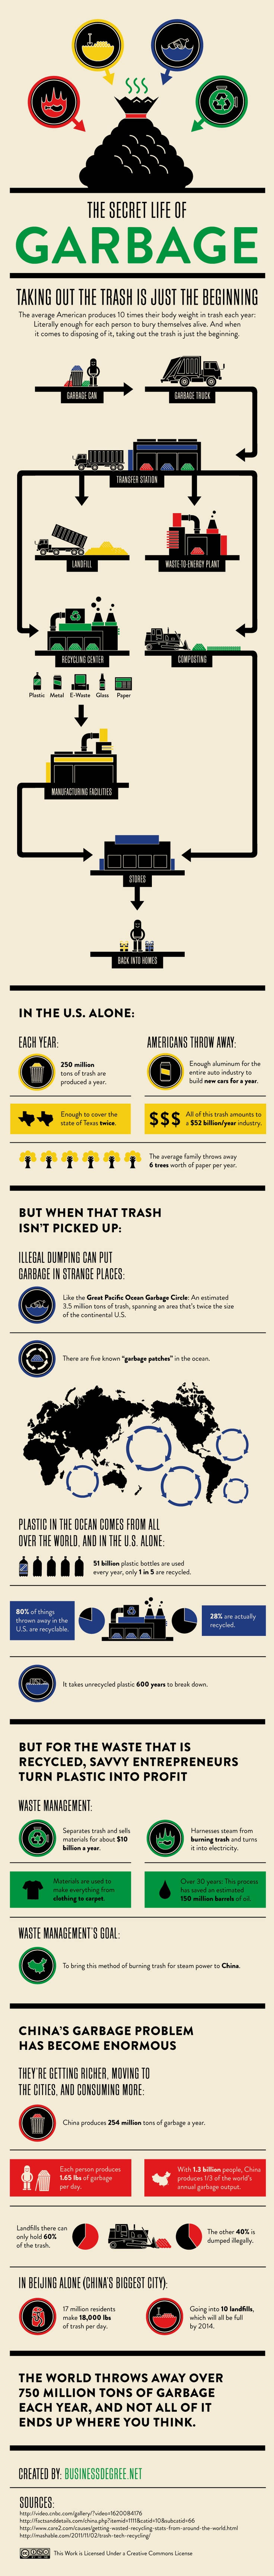 What You Need to Know About Garbage